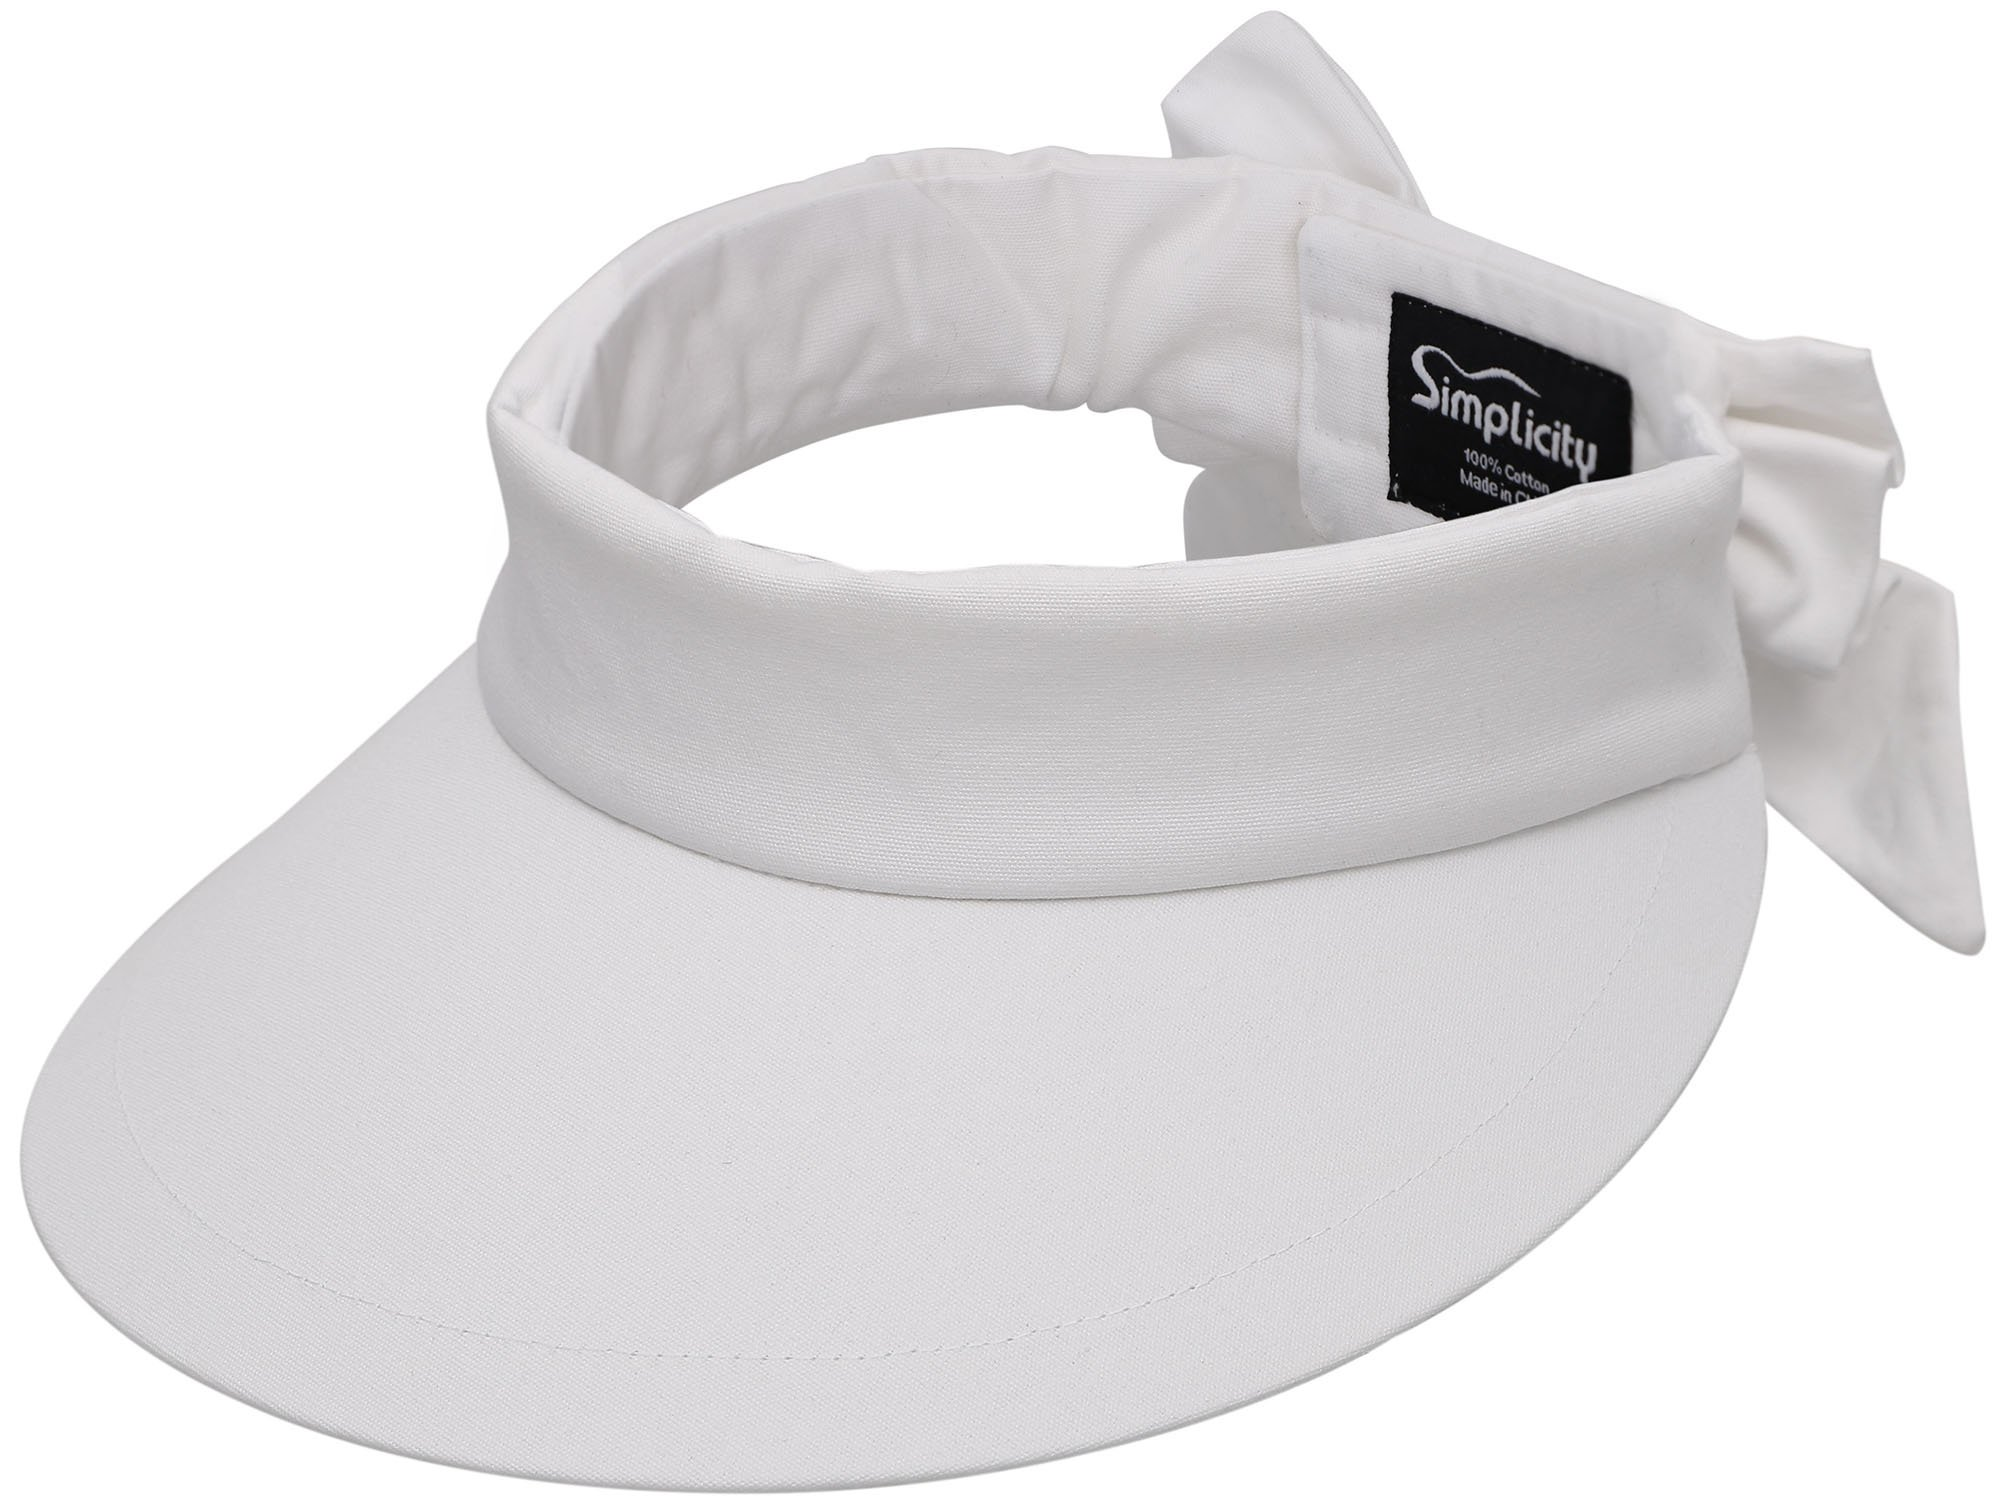 Simplicity Women's SPF 50+ UV Protection Wide Brim Beach Sun Visor Hat,White by Simplicity